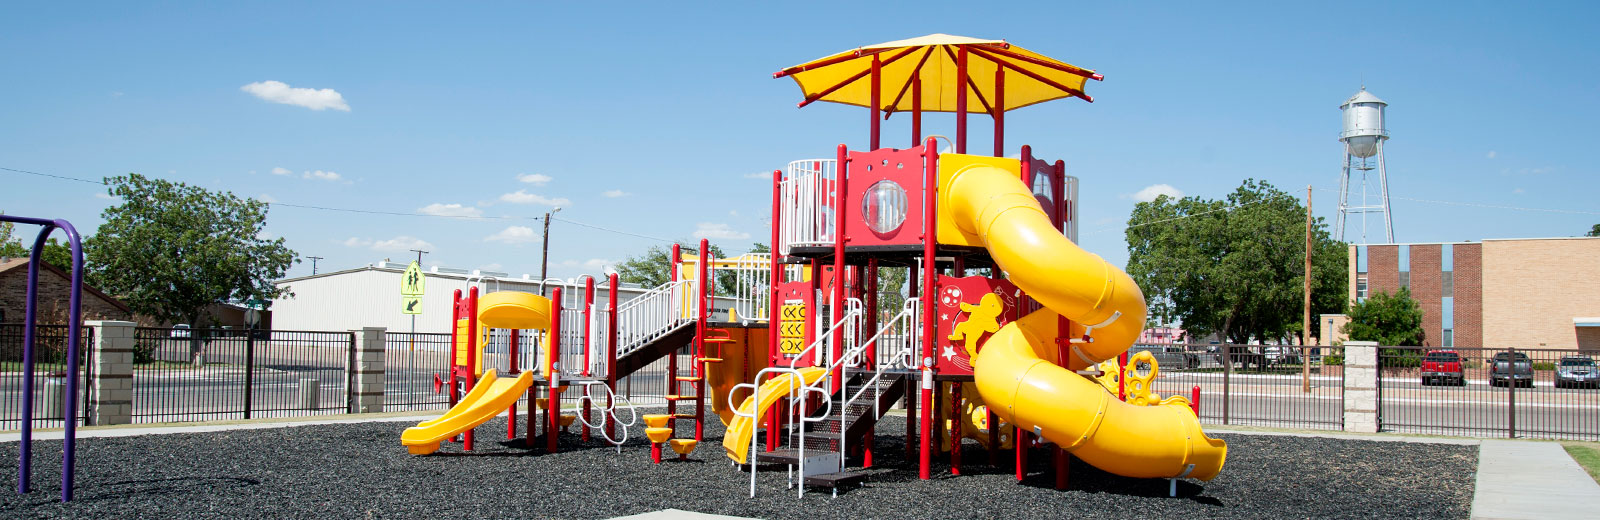 Canopy for Play Structures